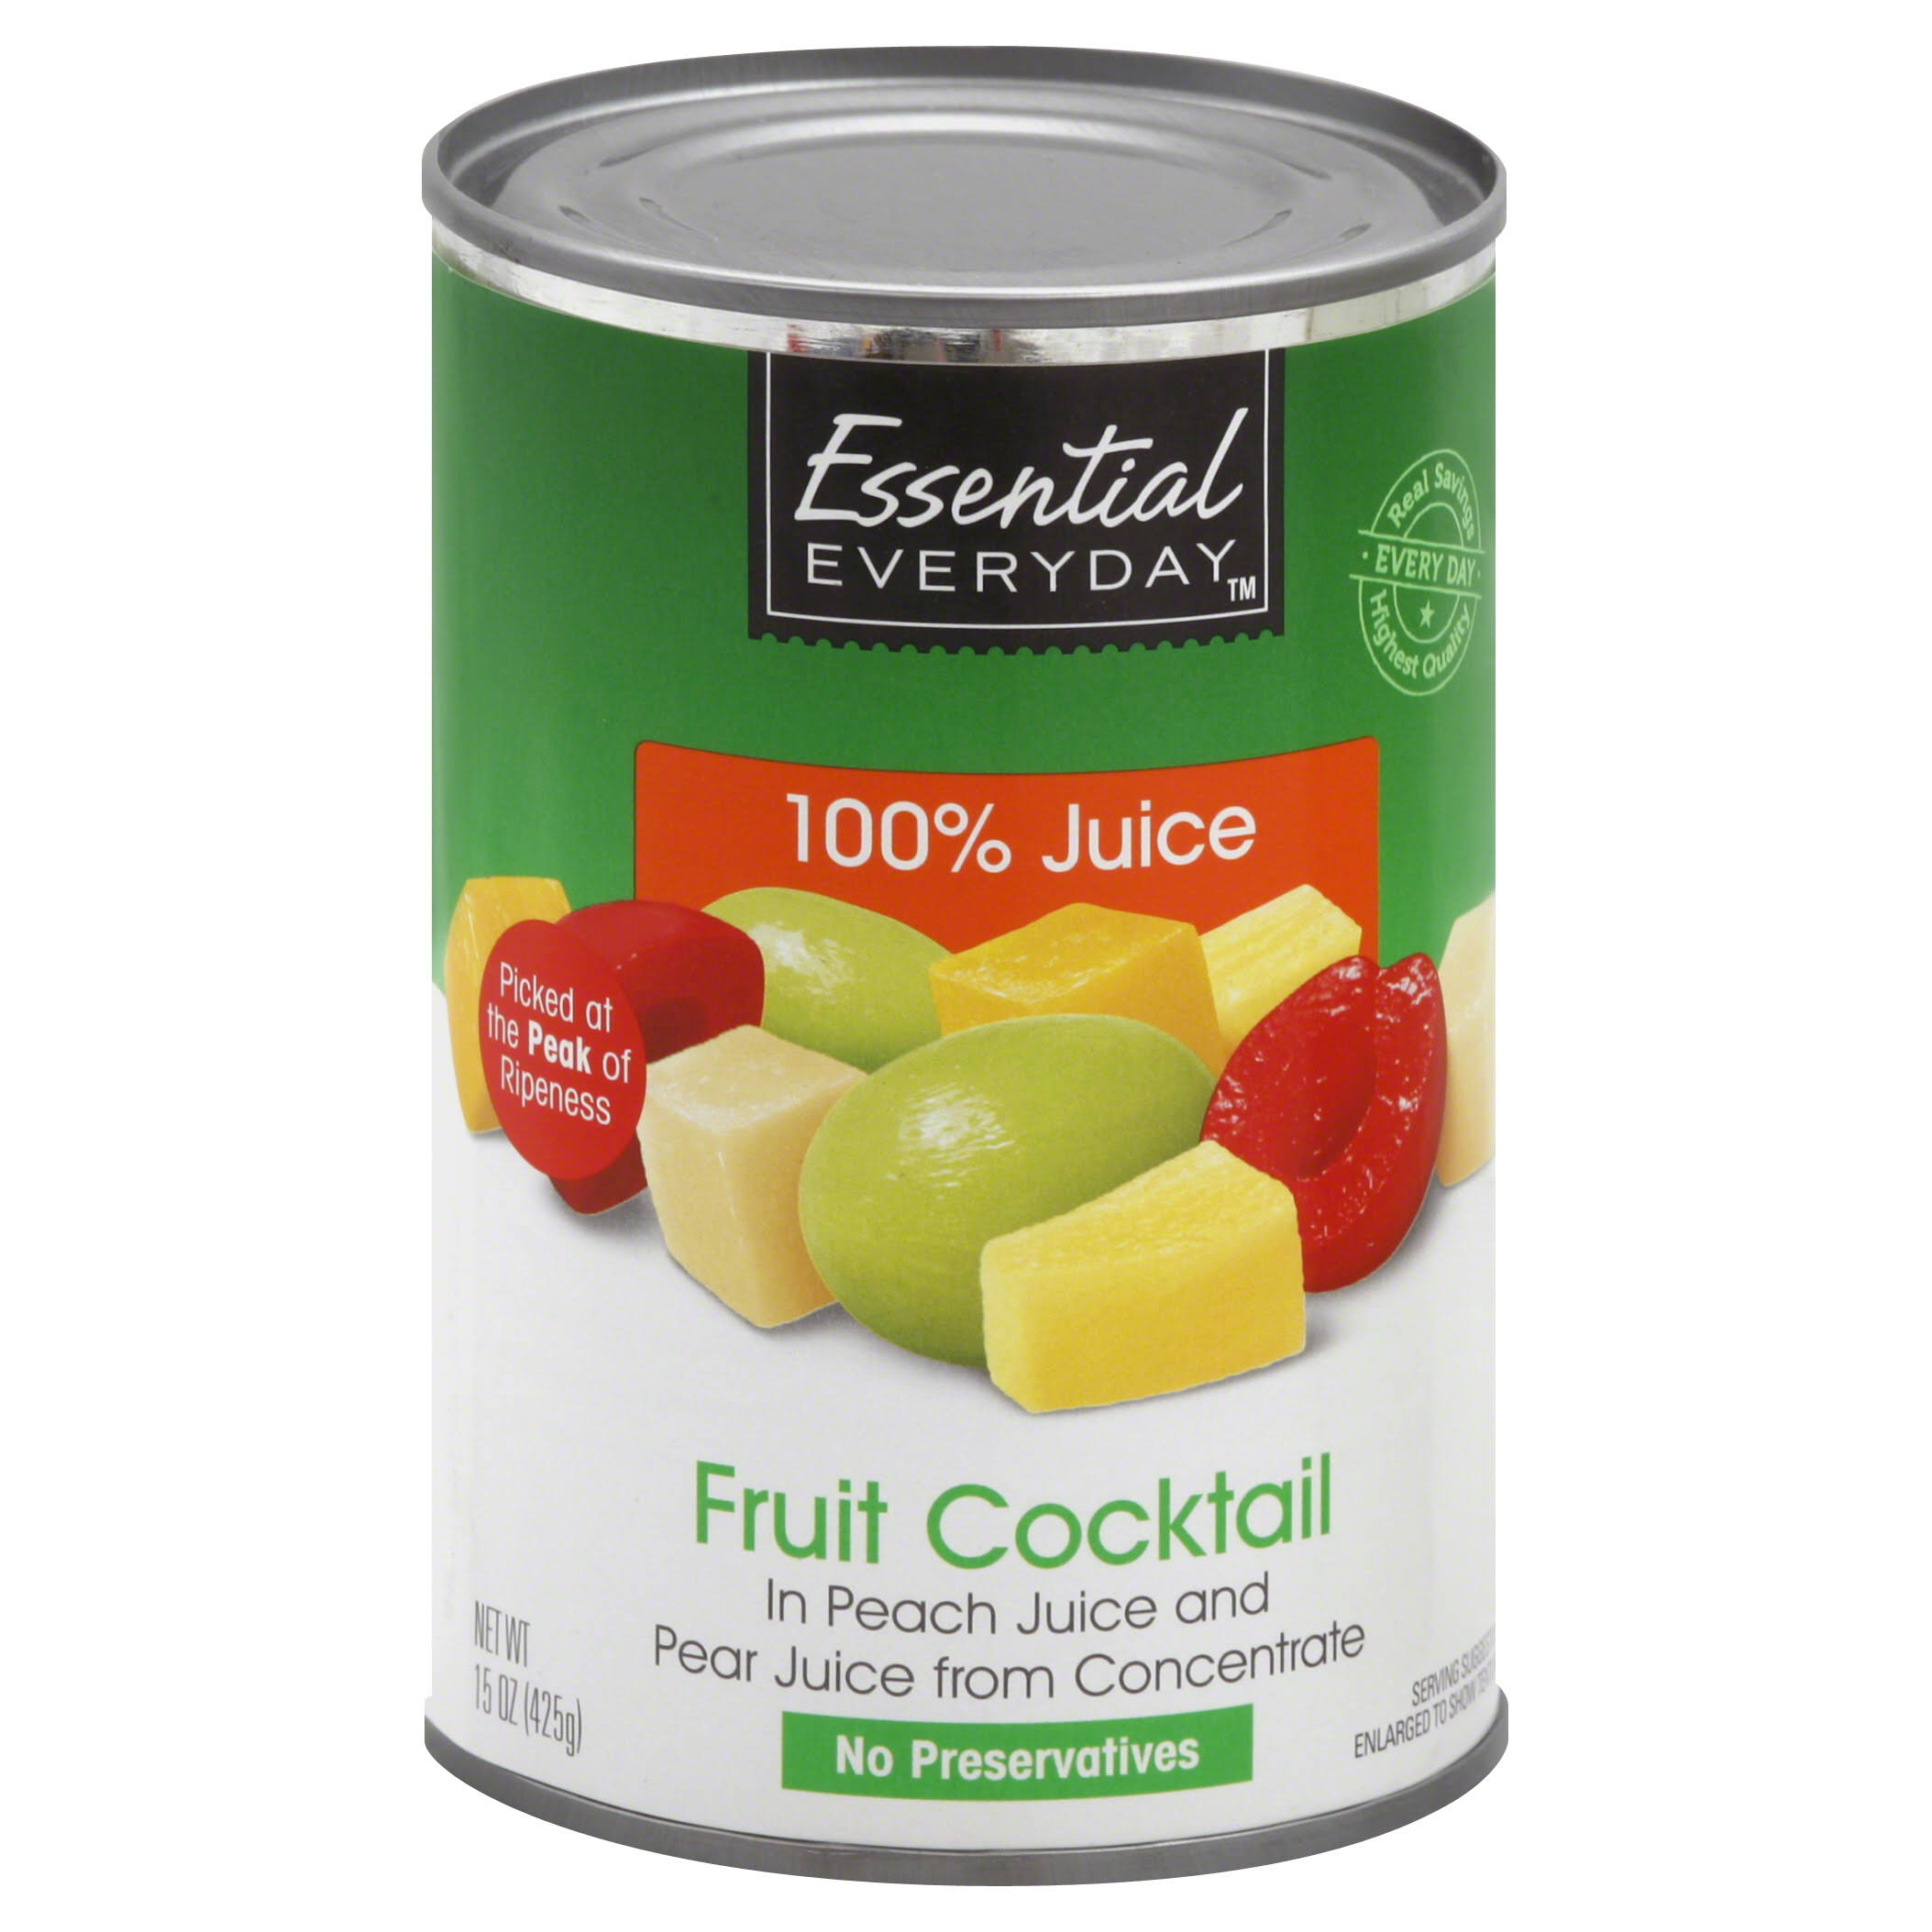 Essential Everyday Fruit Cocktail - 15 oz